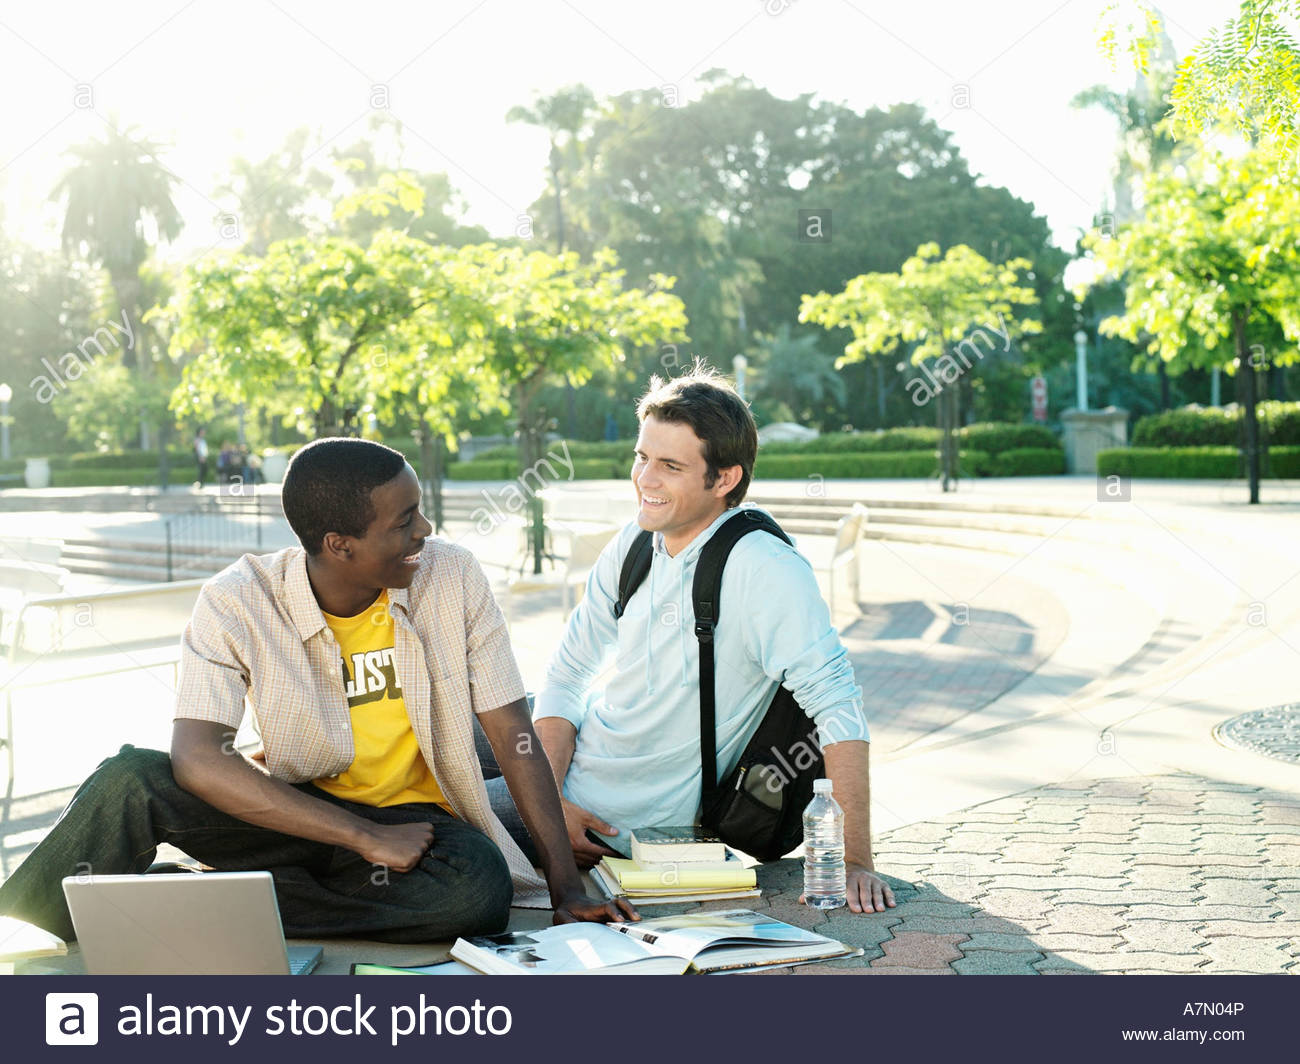 Two male university students sitting on ground with textbooks and laptop smiling - Stock Image